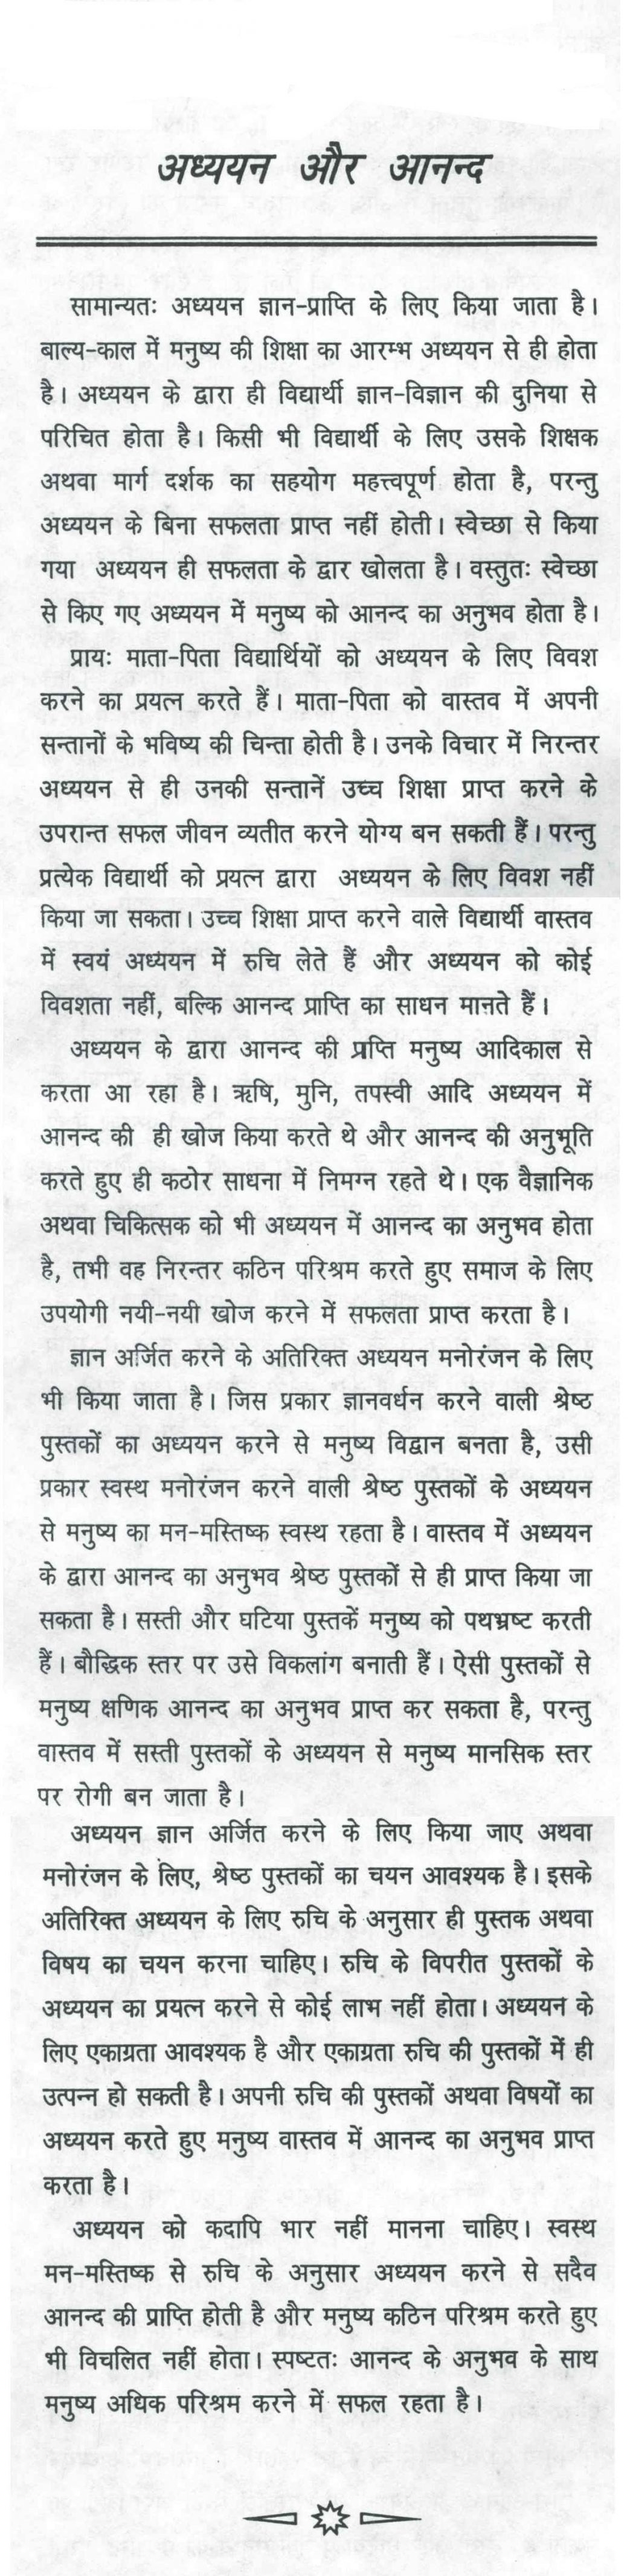 024 Books And Reading Essay Example On Pleasure Of In Hindi Close 10019 Poetry Outstanding Benefits Book English For Class 6 My Hobby Full